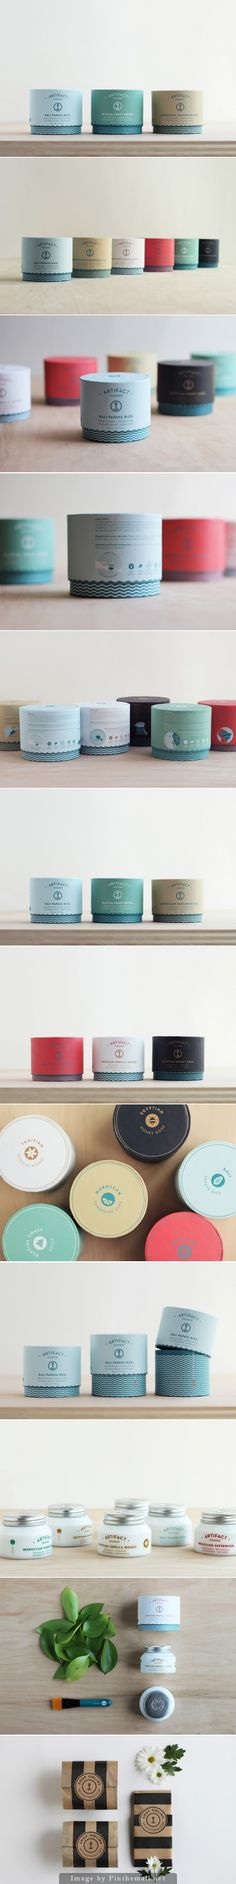 Artifact Masque http://www.packagingoftheworld.com/2014/06/artifact-masque.html面膜